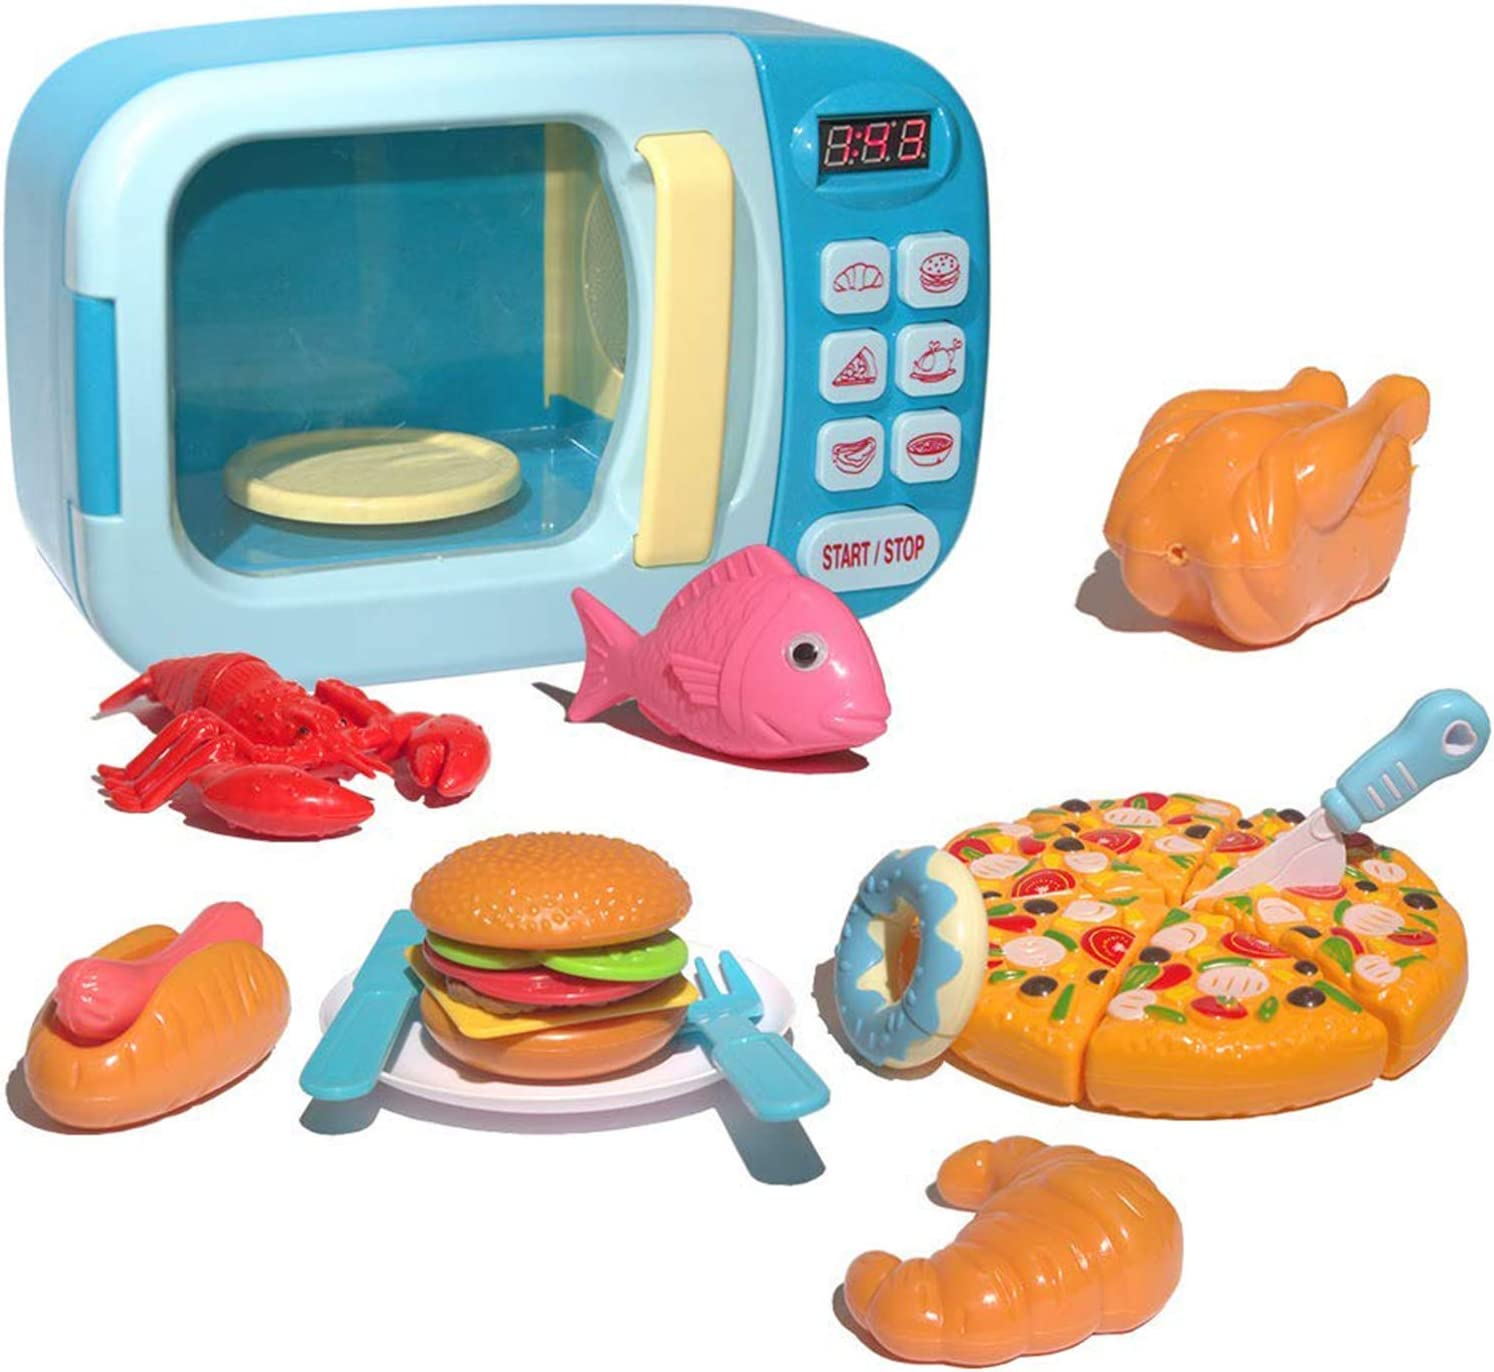 Microwave Kitchen Toys Play Set Pretend Accessories Fake Food Educational Toys Awareness Growth Partner Suitable for boy and Girl 3 4 5 6 Years Old (Blue)